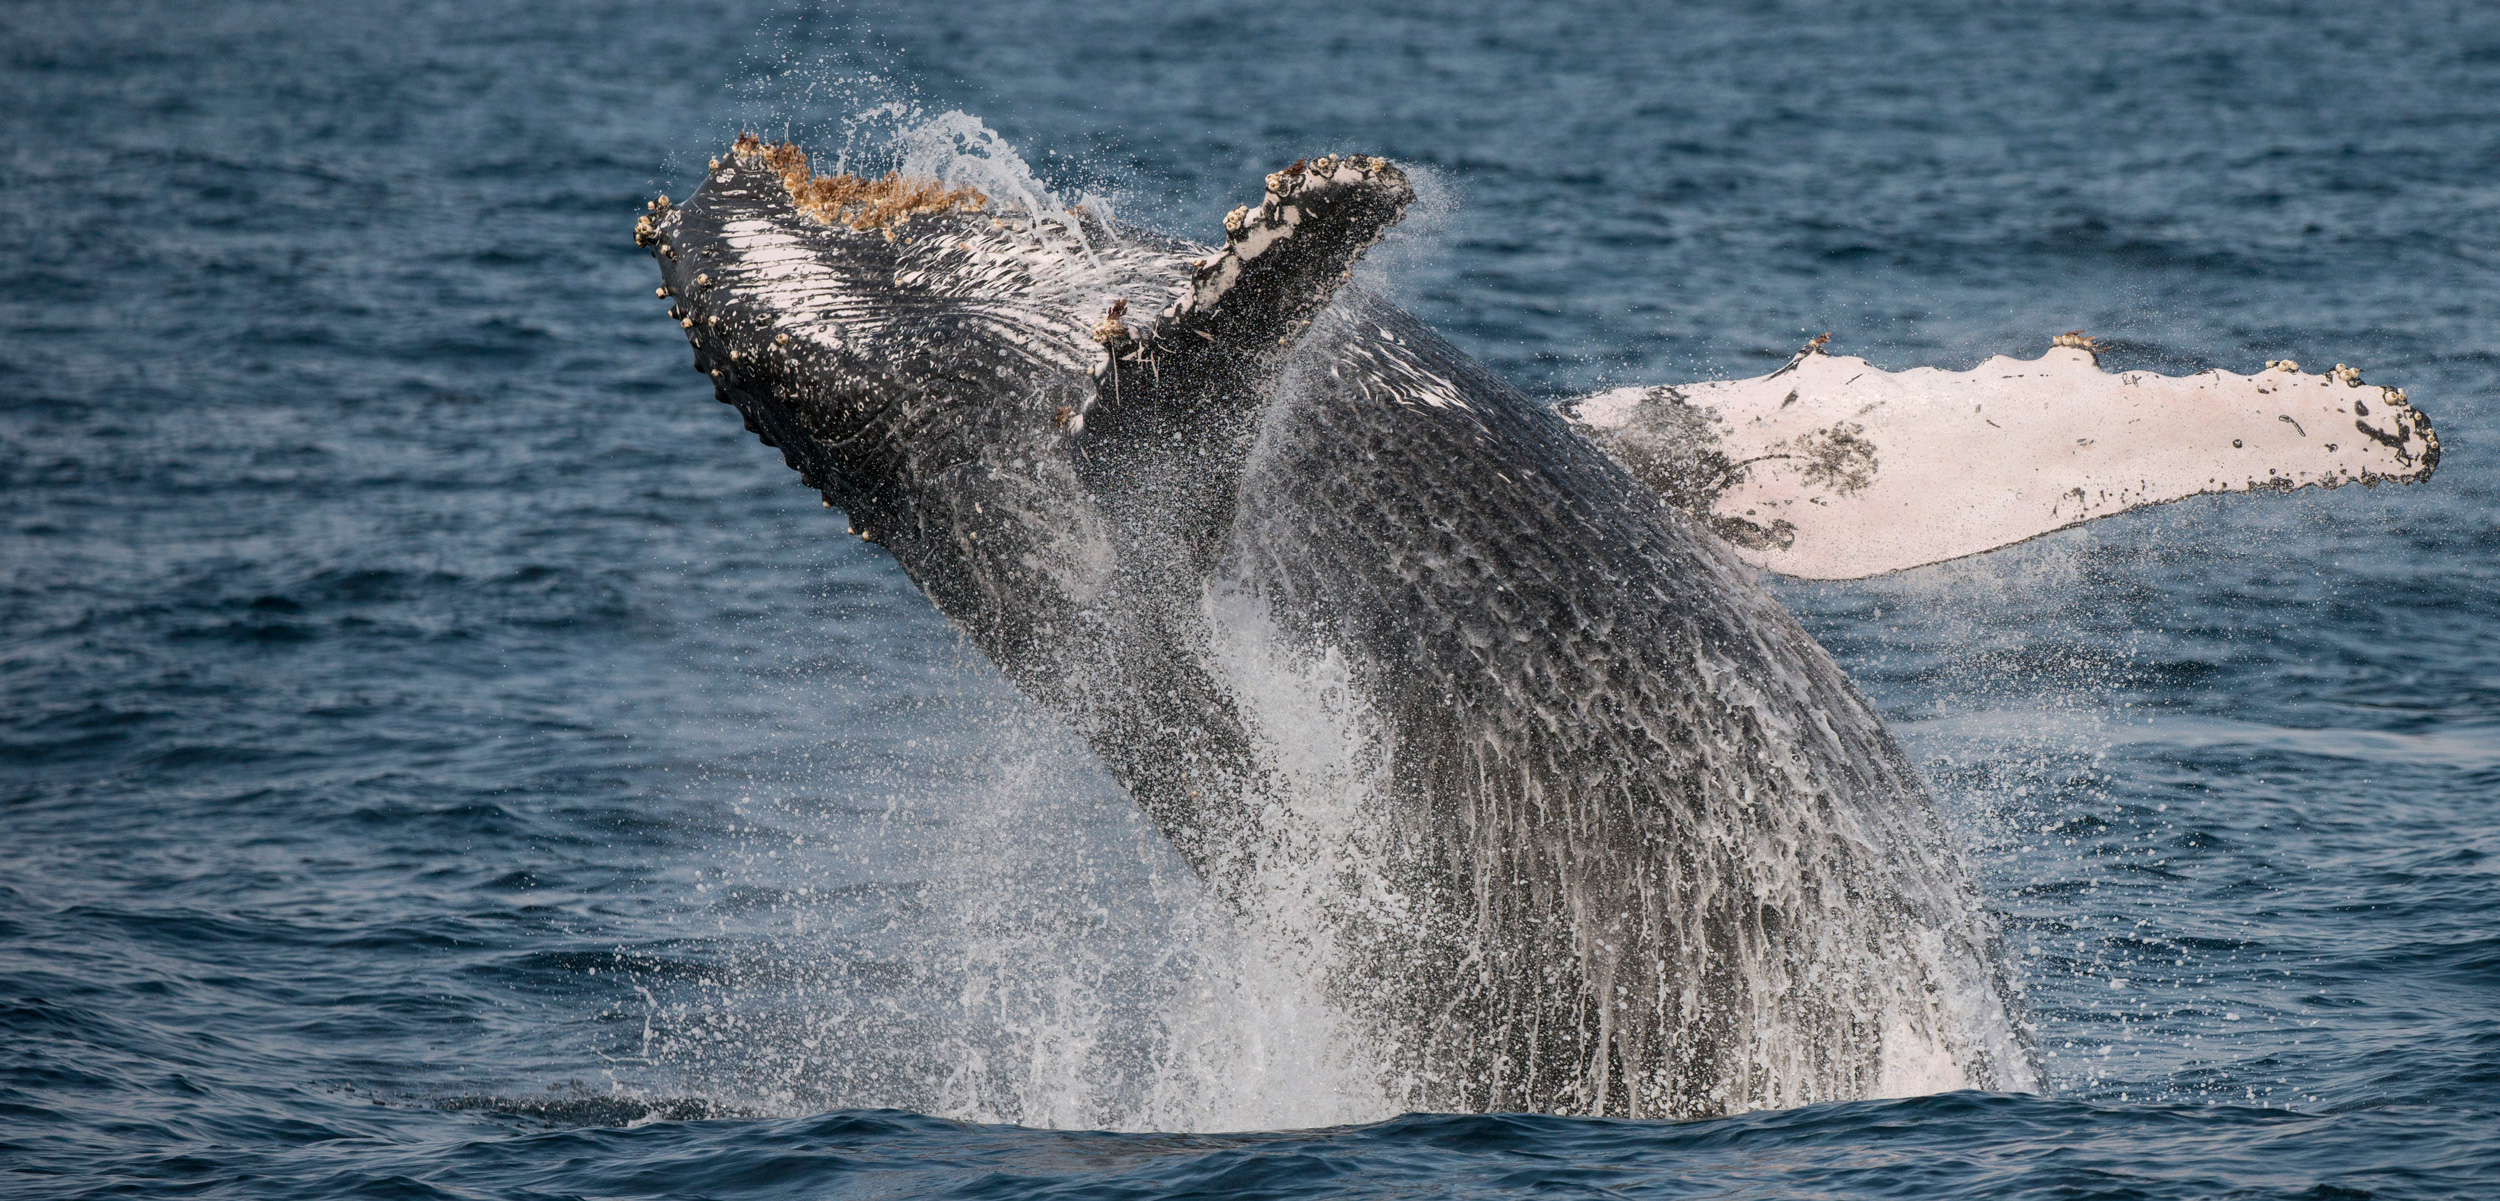 One of the most frequently asked questions about whales is why they breach. A study of humpback whales migrating past Australia offers the most definitive answers yet. Photo by Pete Oxford/Minden Pictures